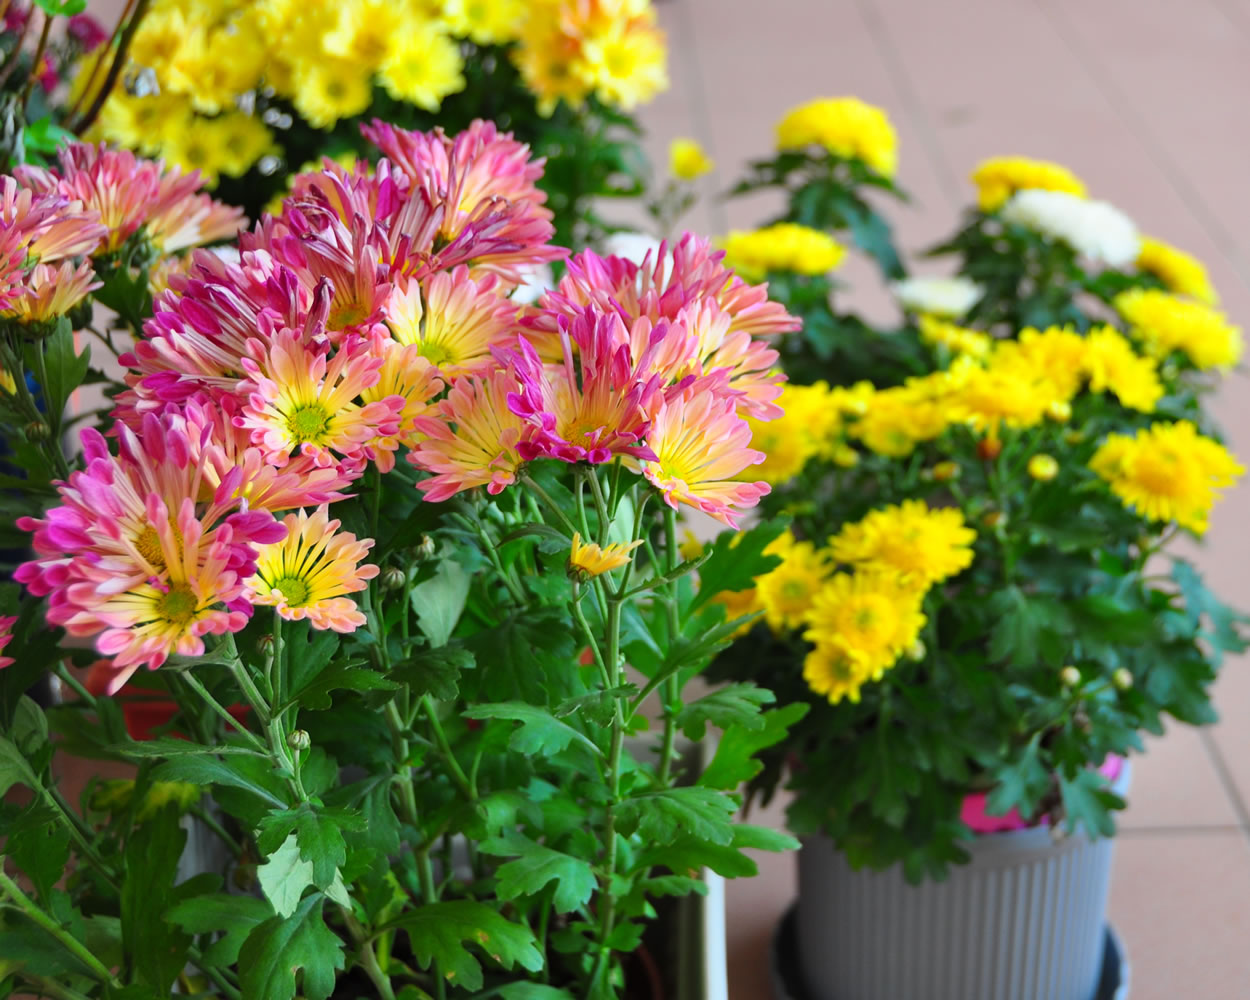 Abusing out-of-focus as an effect on flowers. Hehehe.